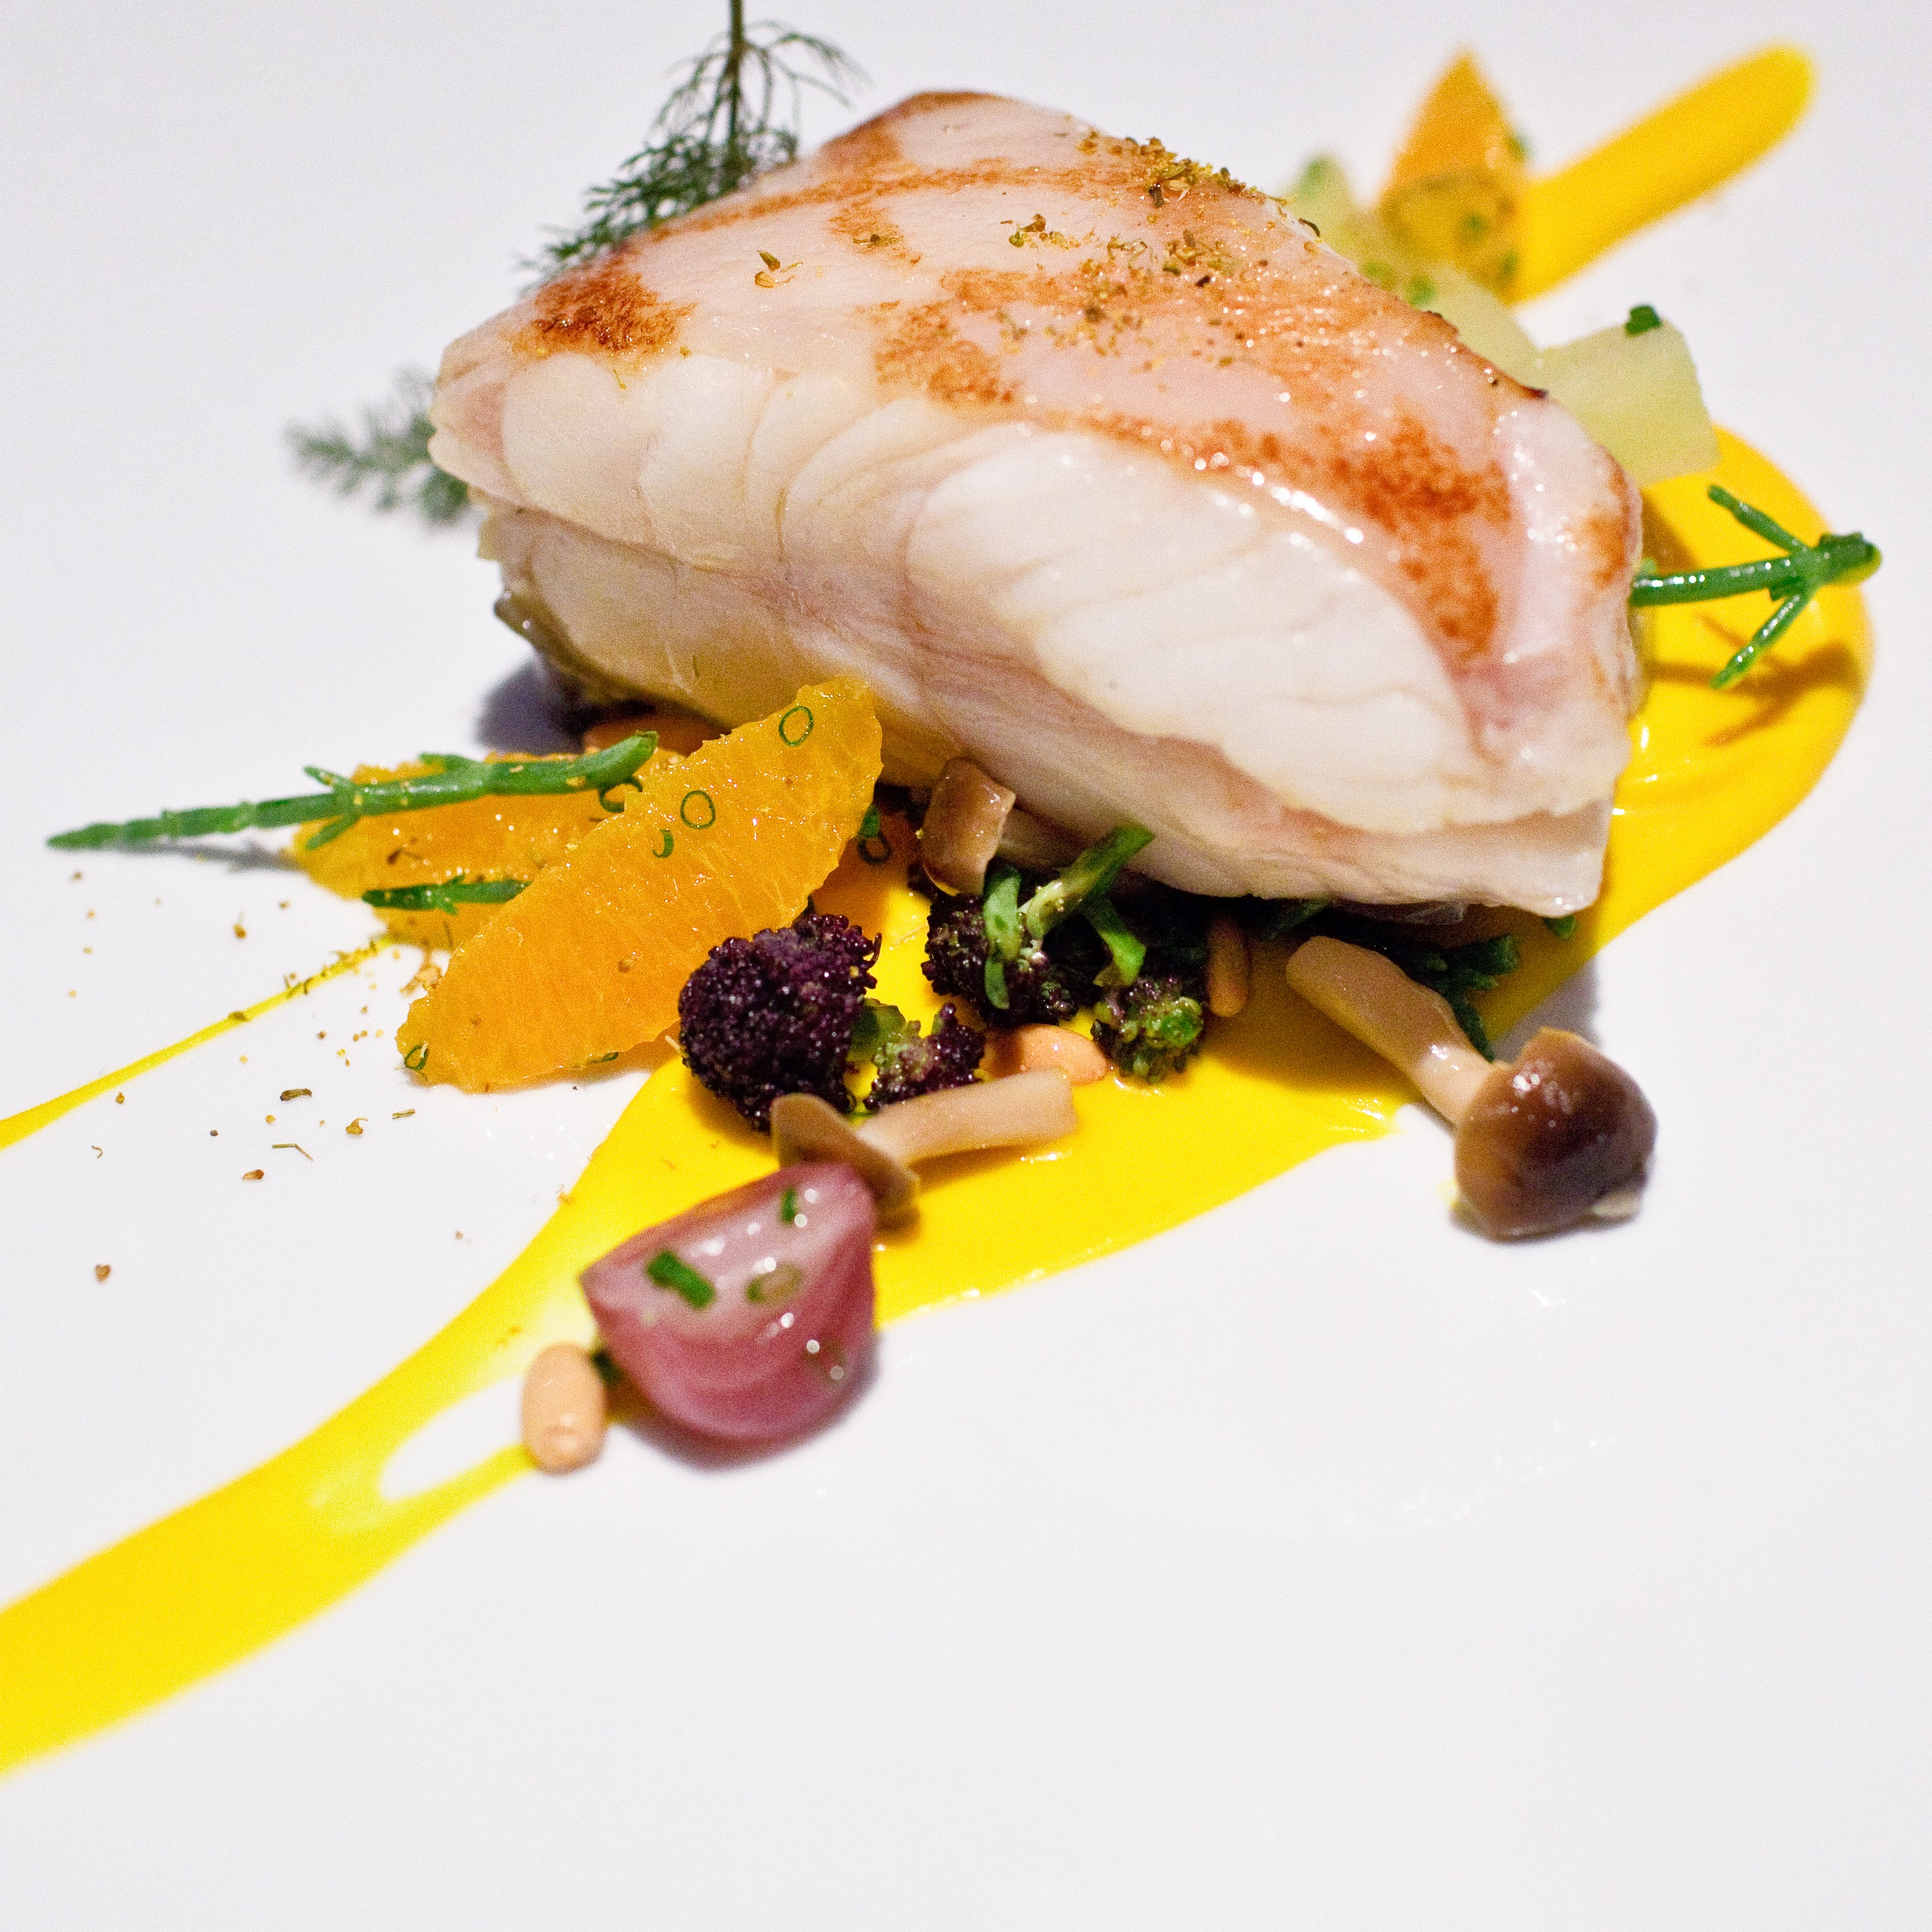 Mayfair s cuckoo club gets menu revamp goodwin 39 s gastro for Turbot fish price